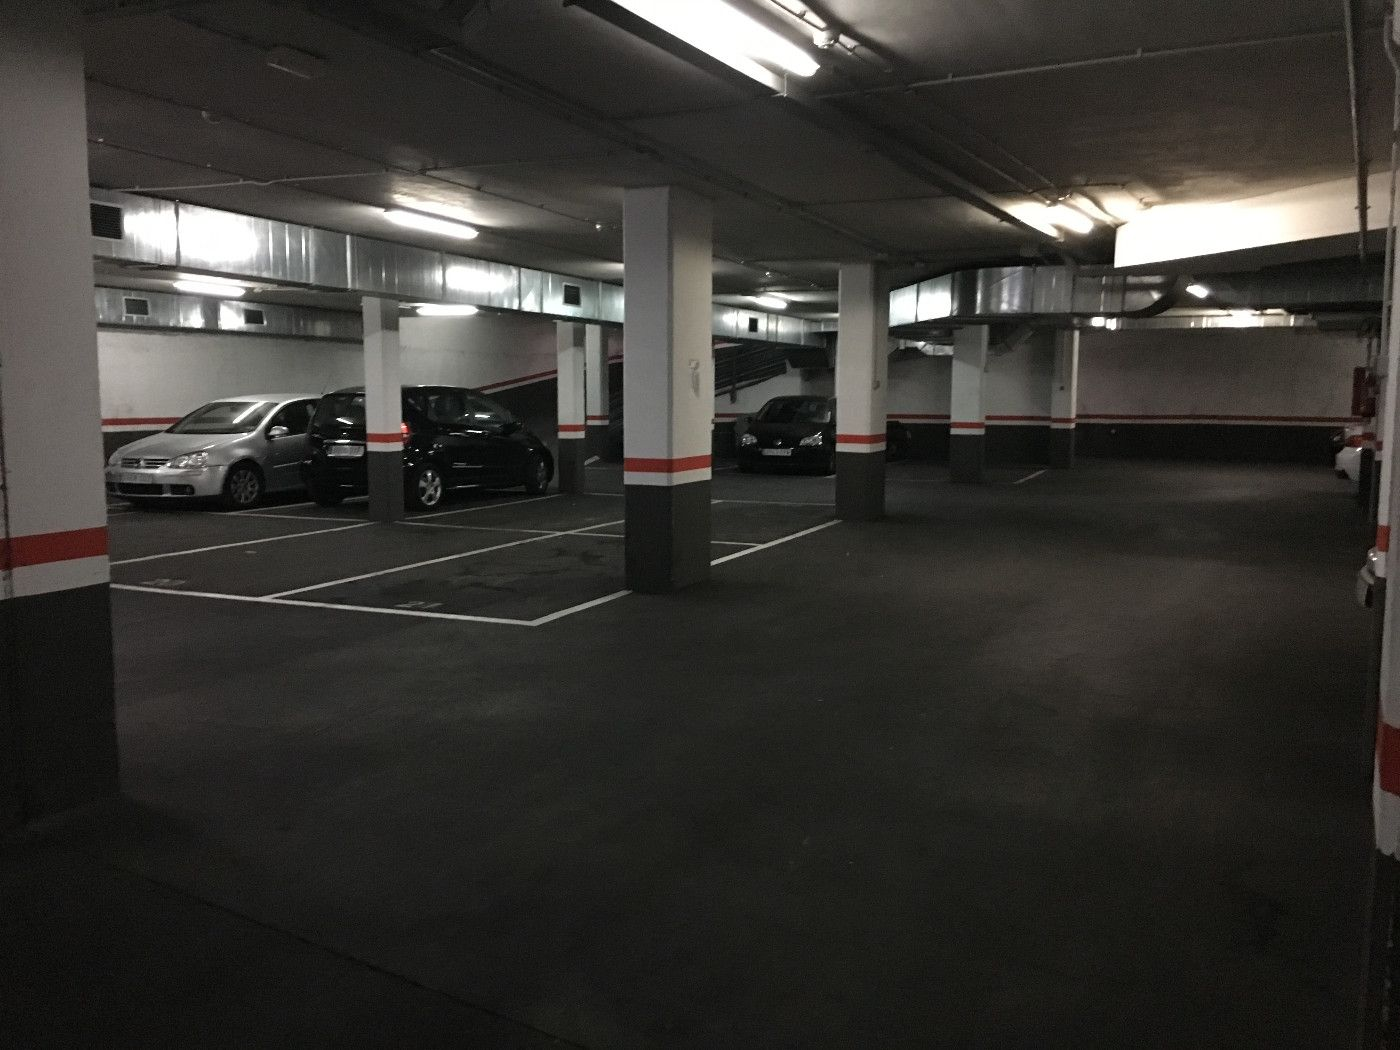 Location Parking voiture  Carrer enginyer. ,al centre,